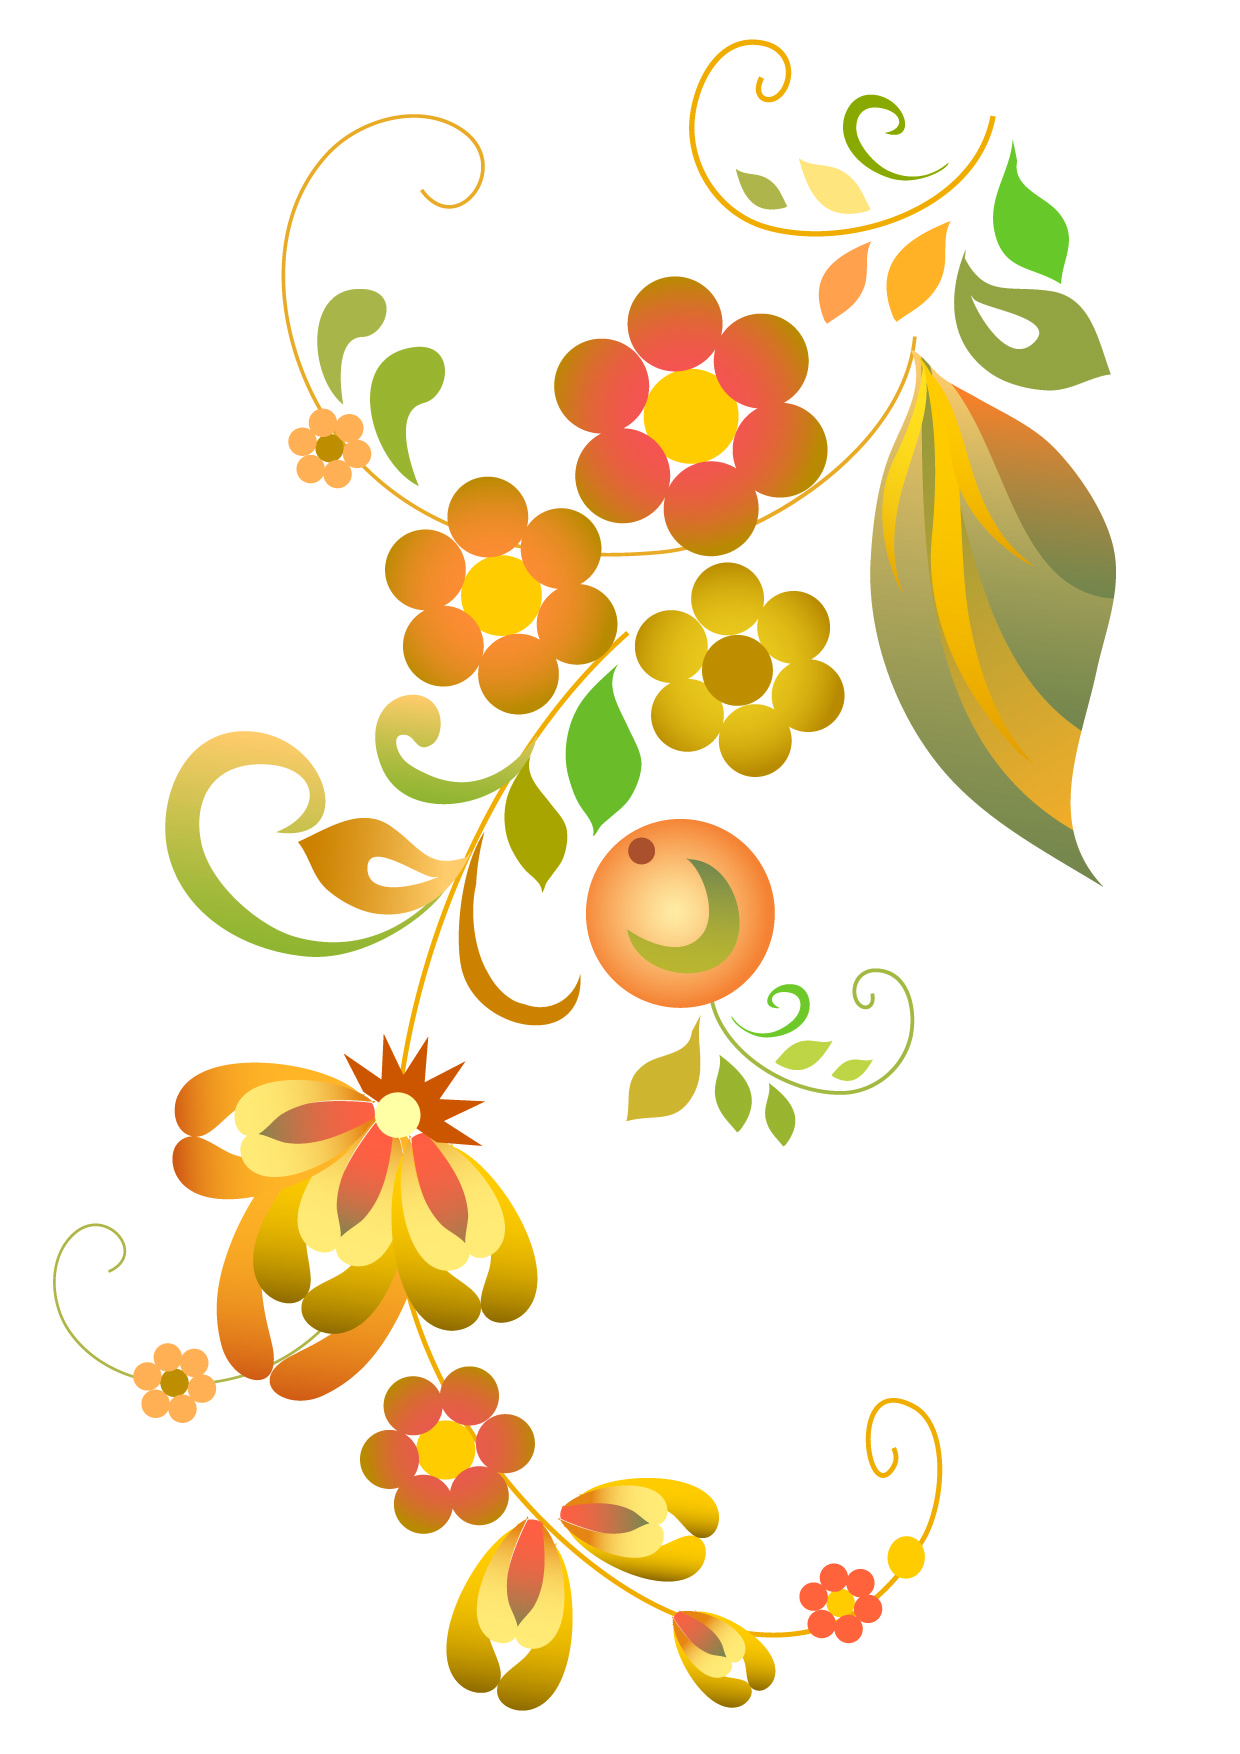 Free Vector Flower, Download Free Clip Art, Free Clip Art on Clipart.